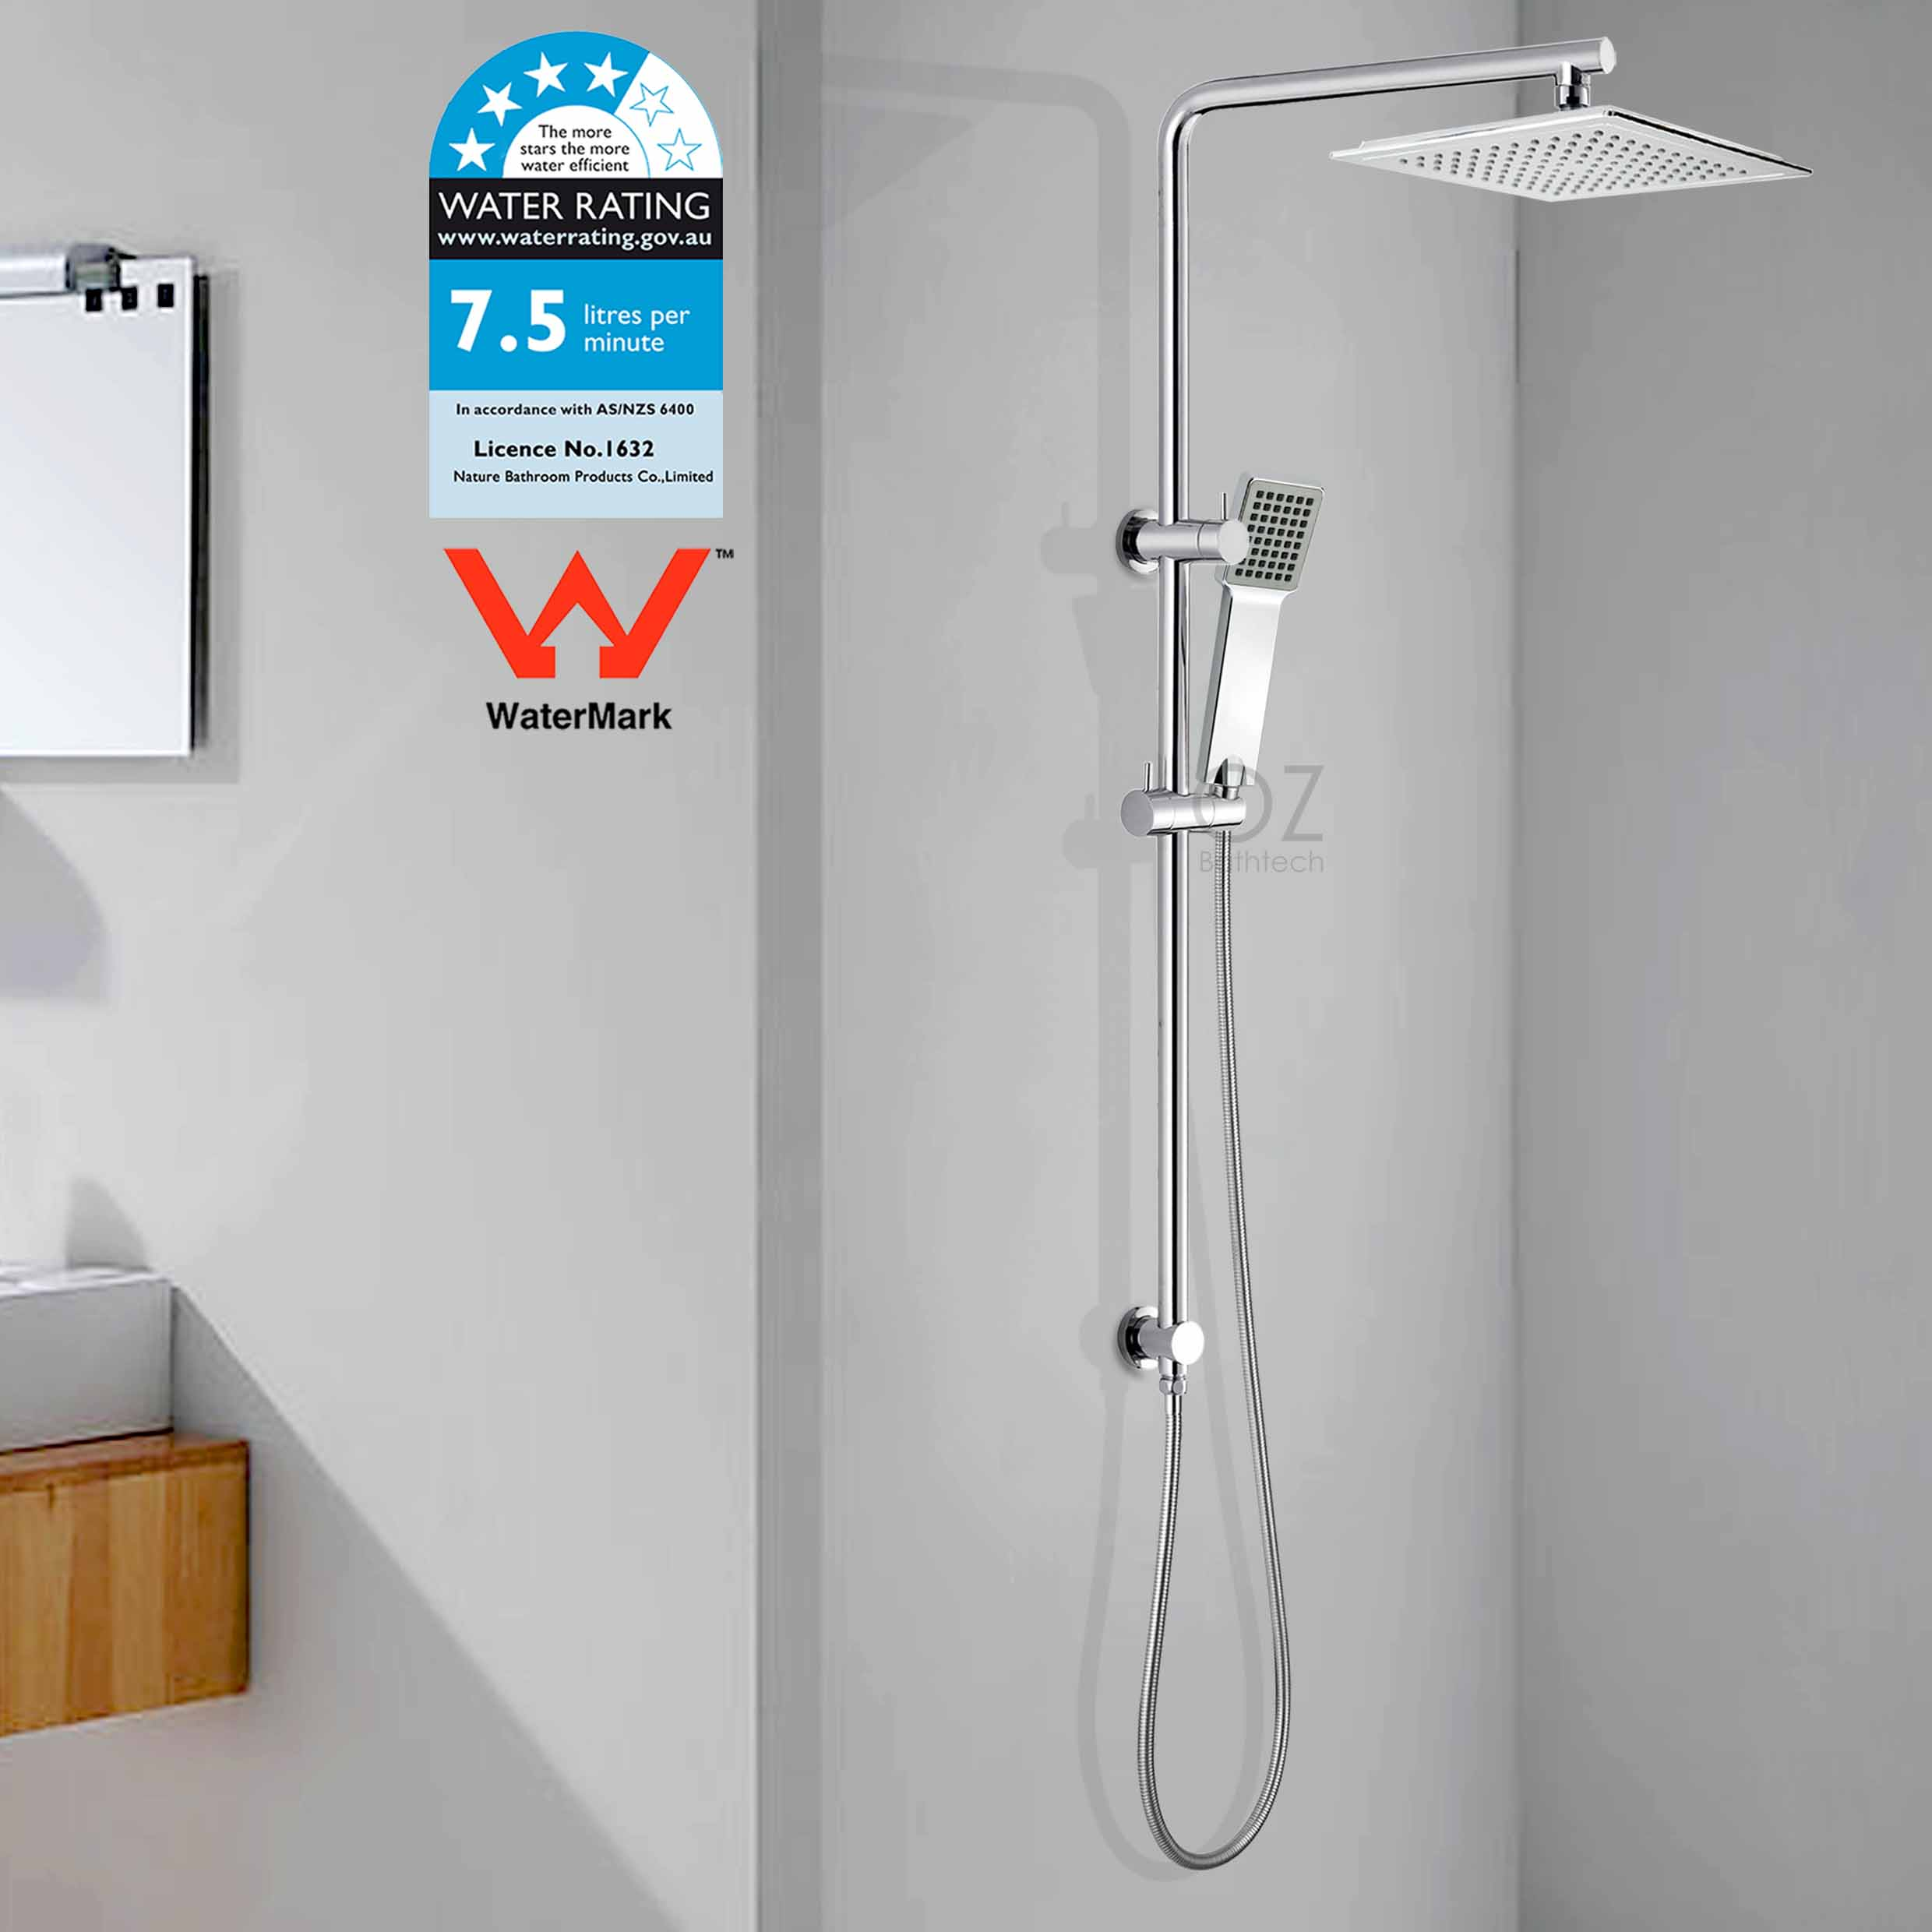 Details About Wels Twin Square Rain Shower Head Rail Diverter Arm Handheld Spray Column Set